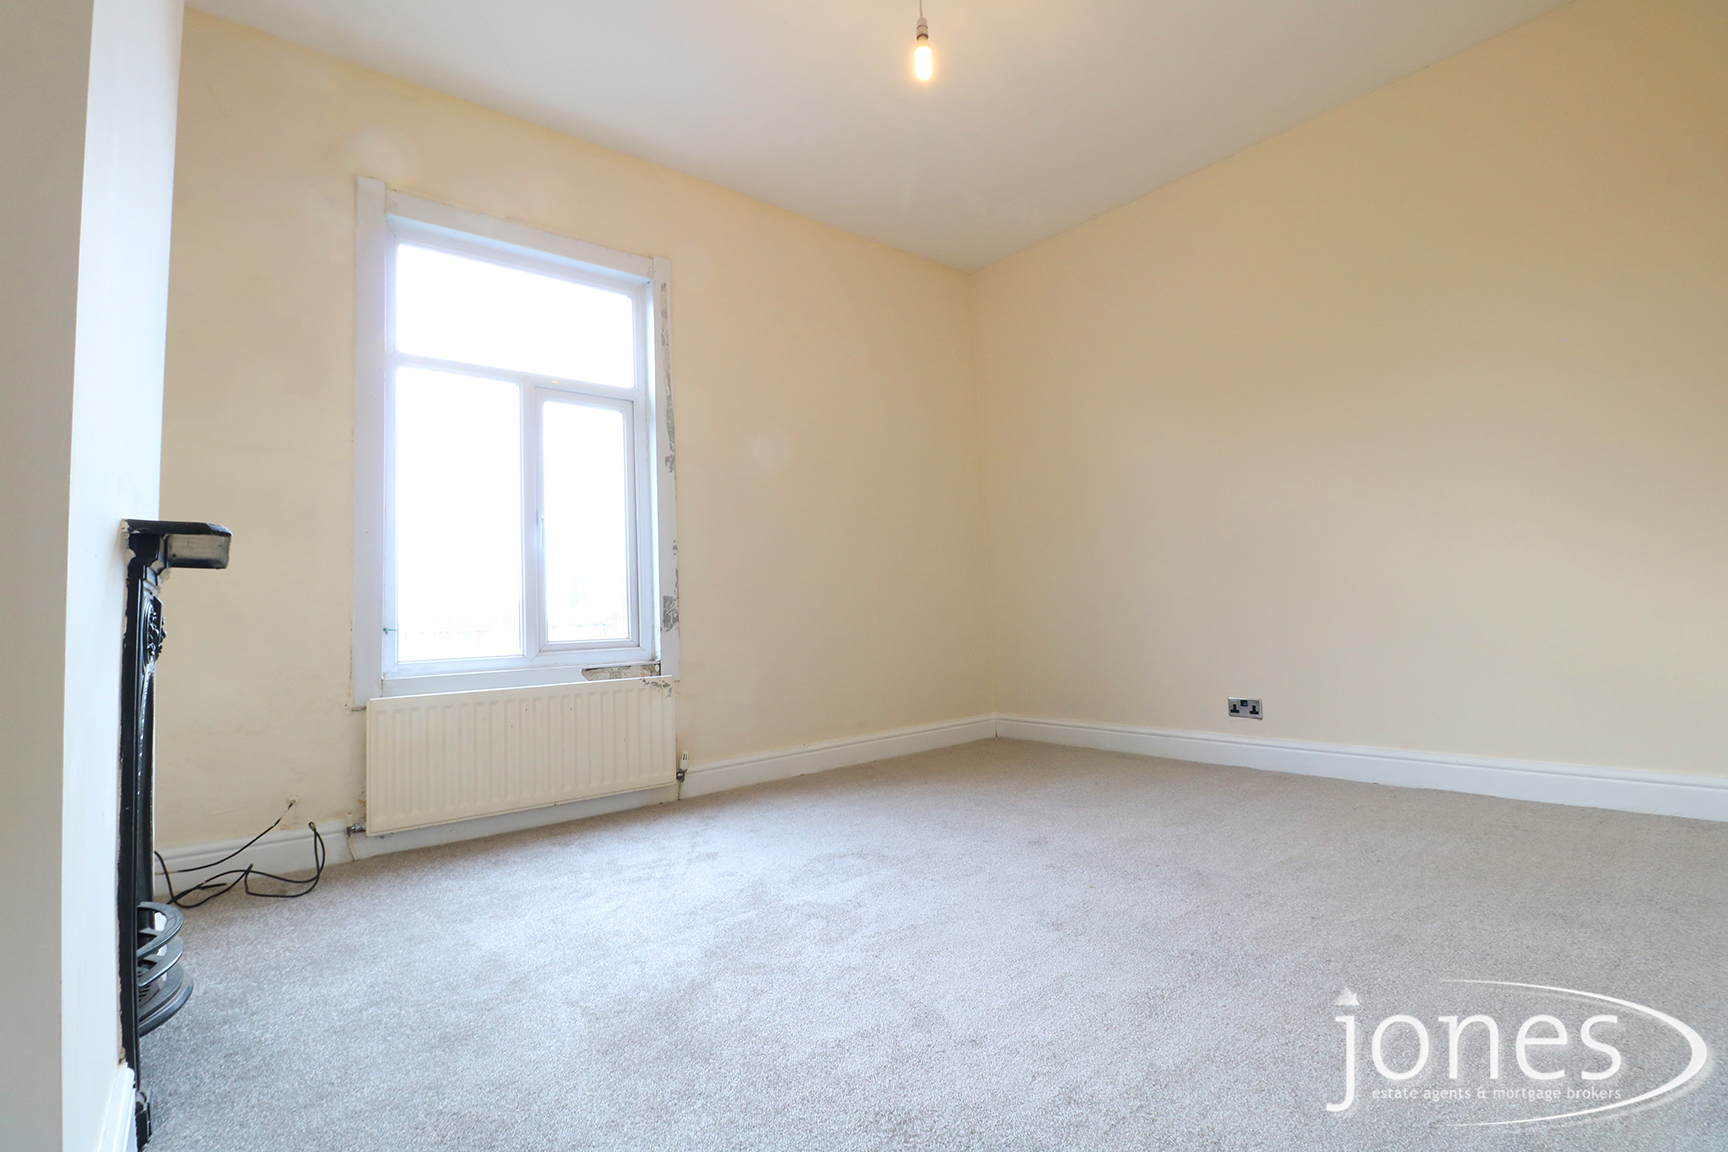 Home for Sale Let - Photo 06 Hallifield Street, Norton, Stockton on Tees, TS20 2HE